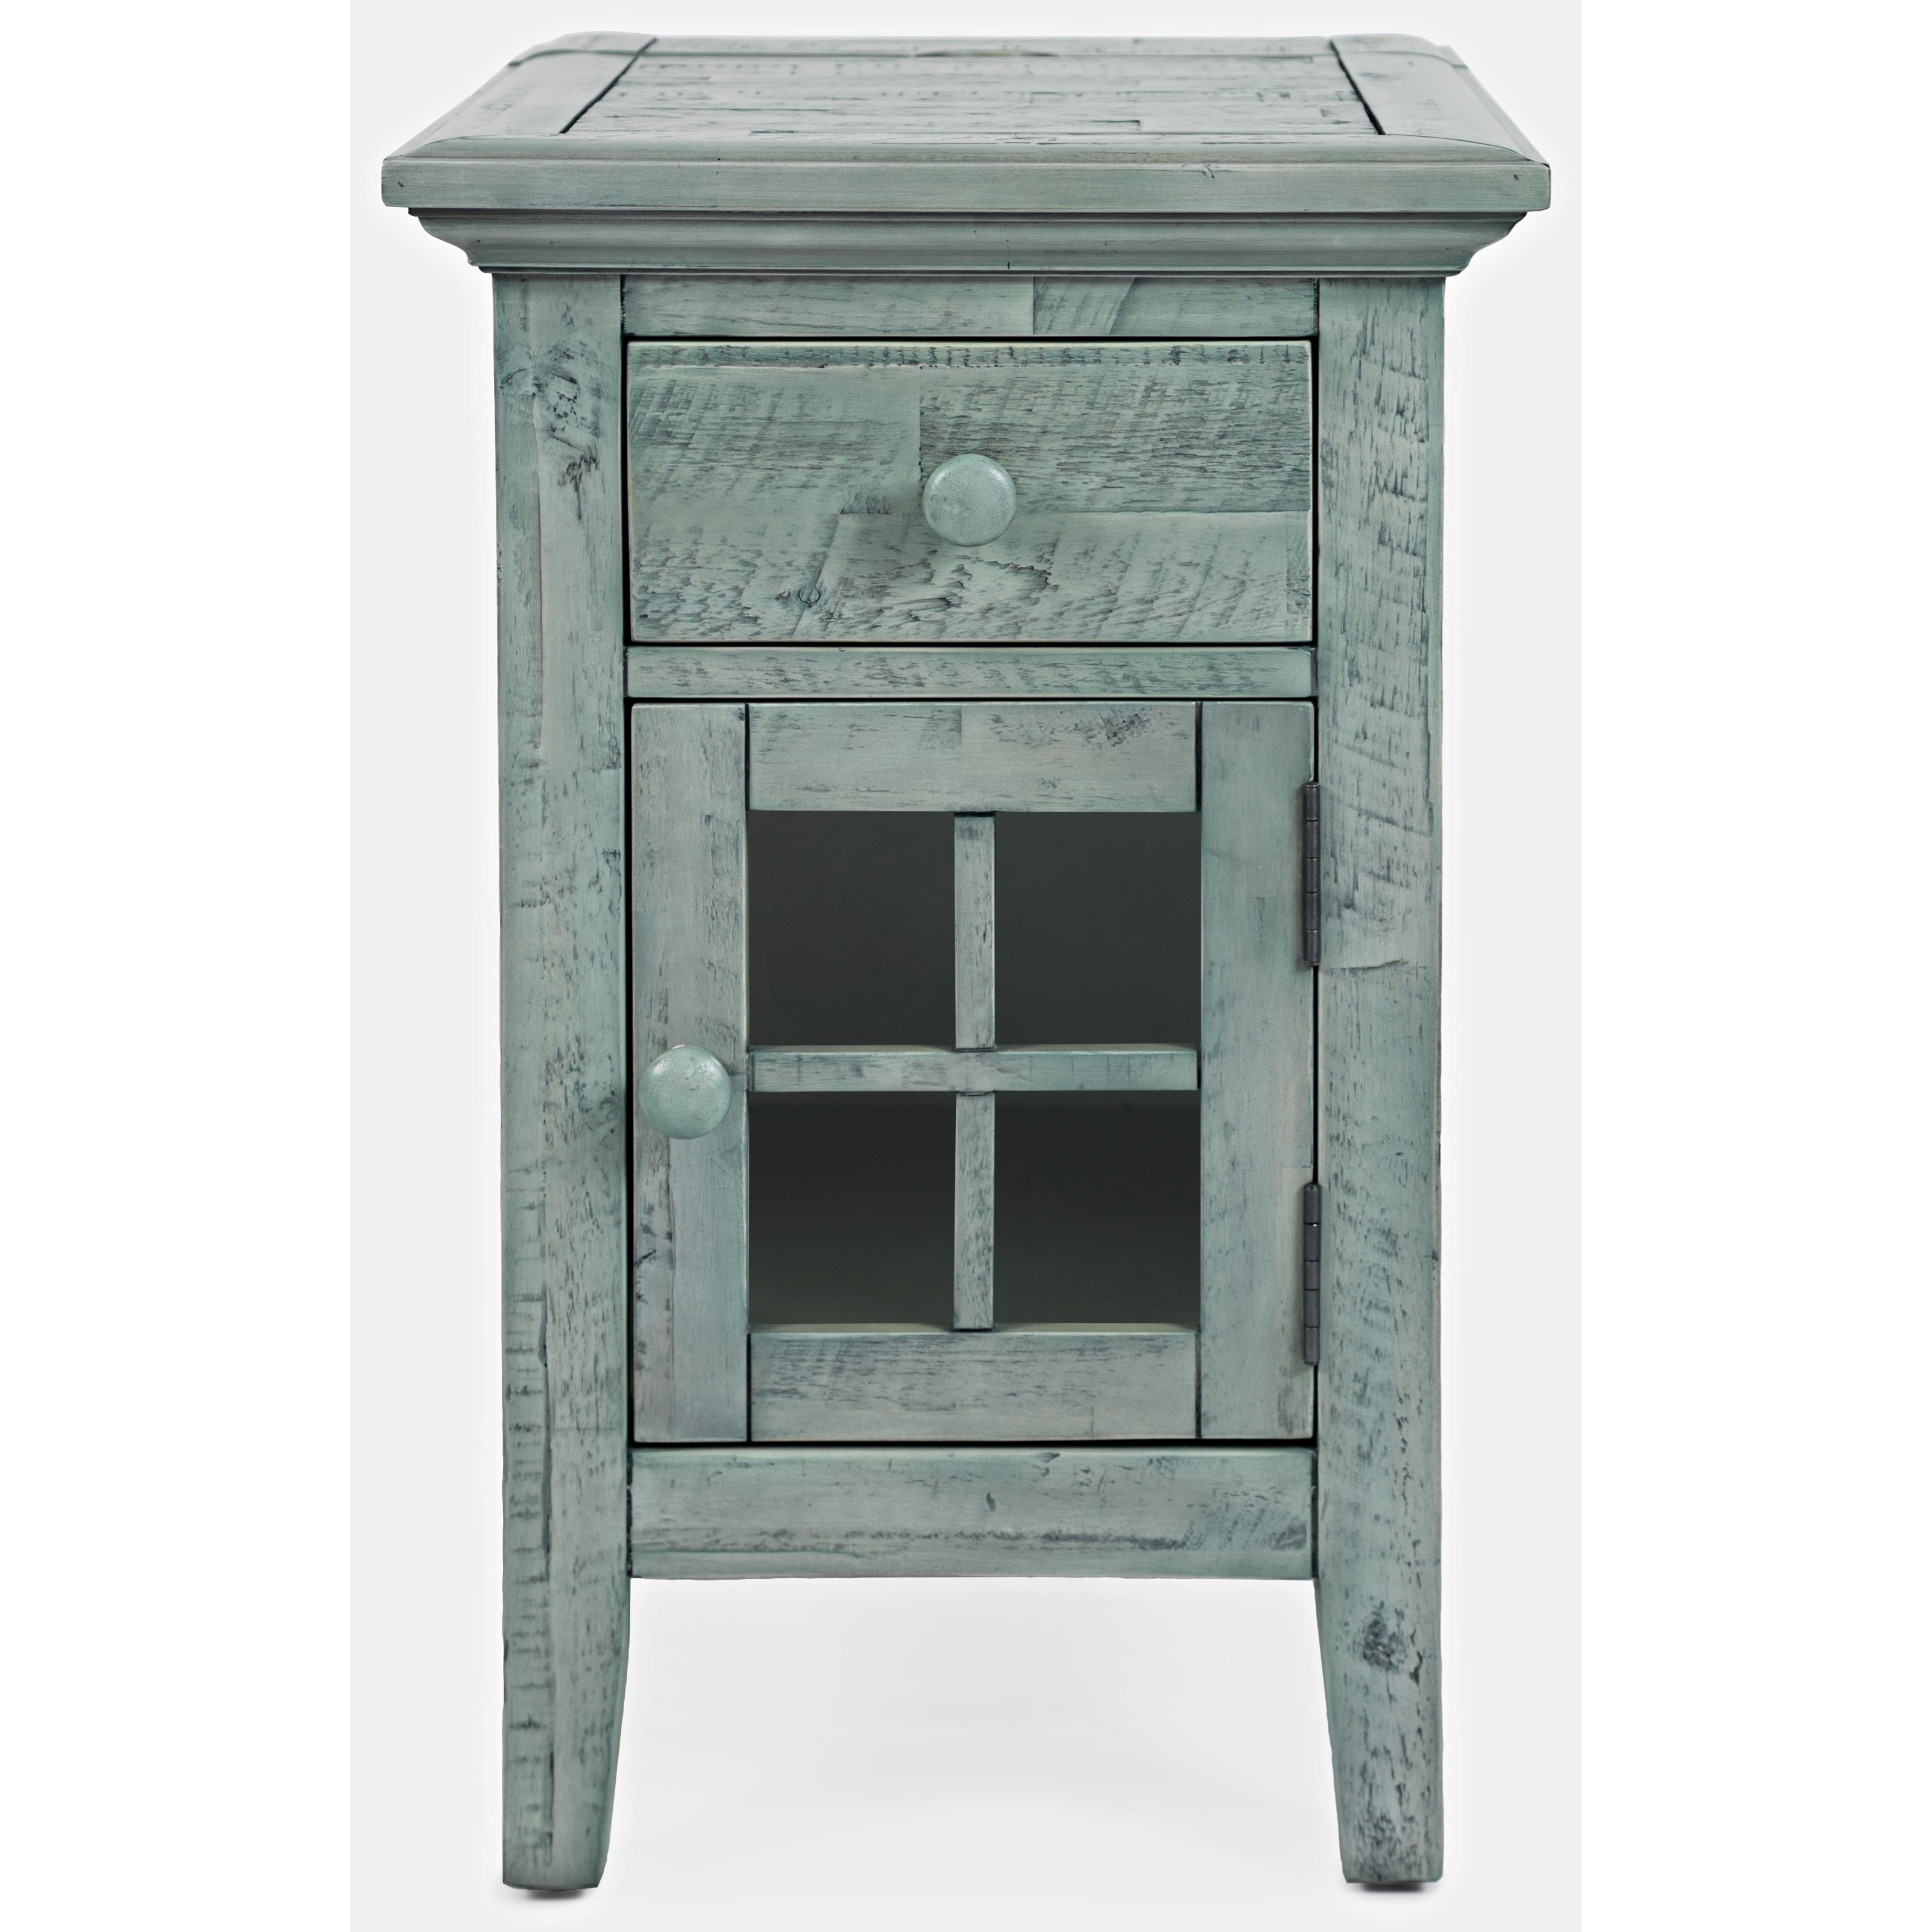 rustic shores chairside accent table jofran kahn furniture rusticshores chairsideaccent gray description glass marble adirondack chairs ethan allen sectional sofas beachy end